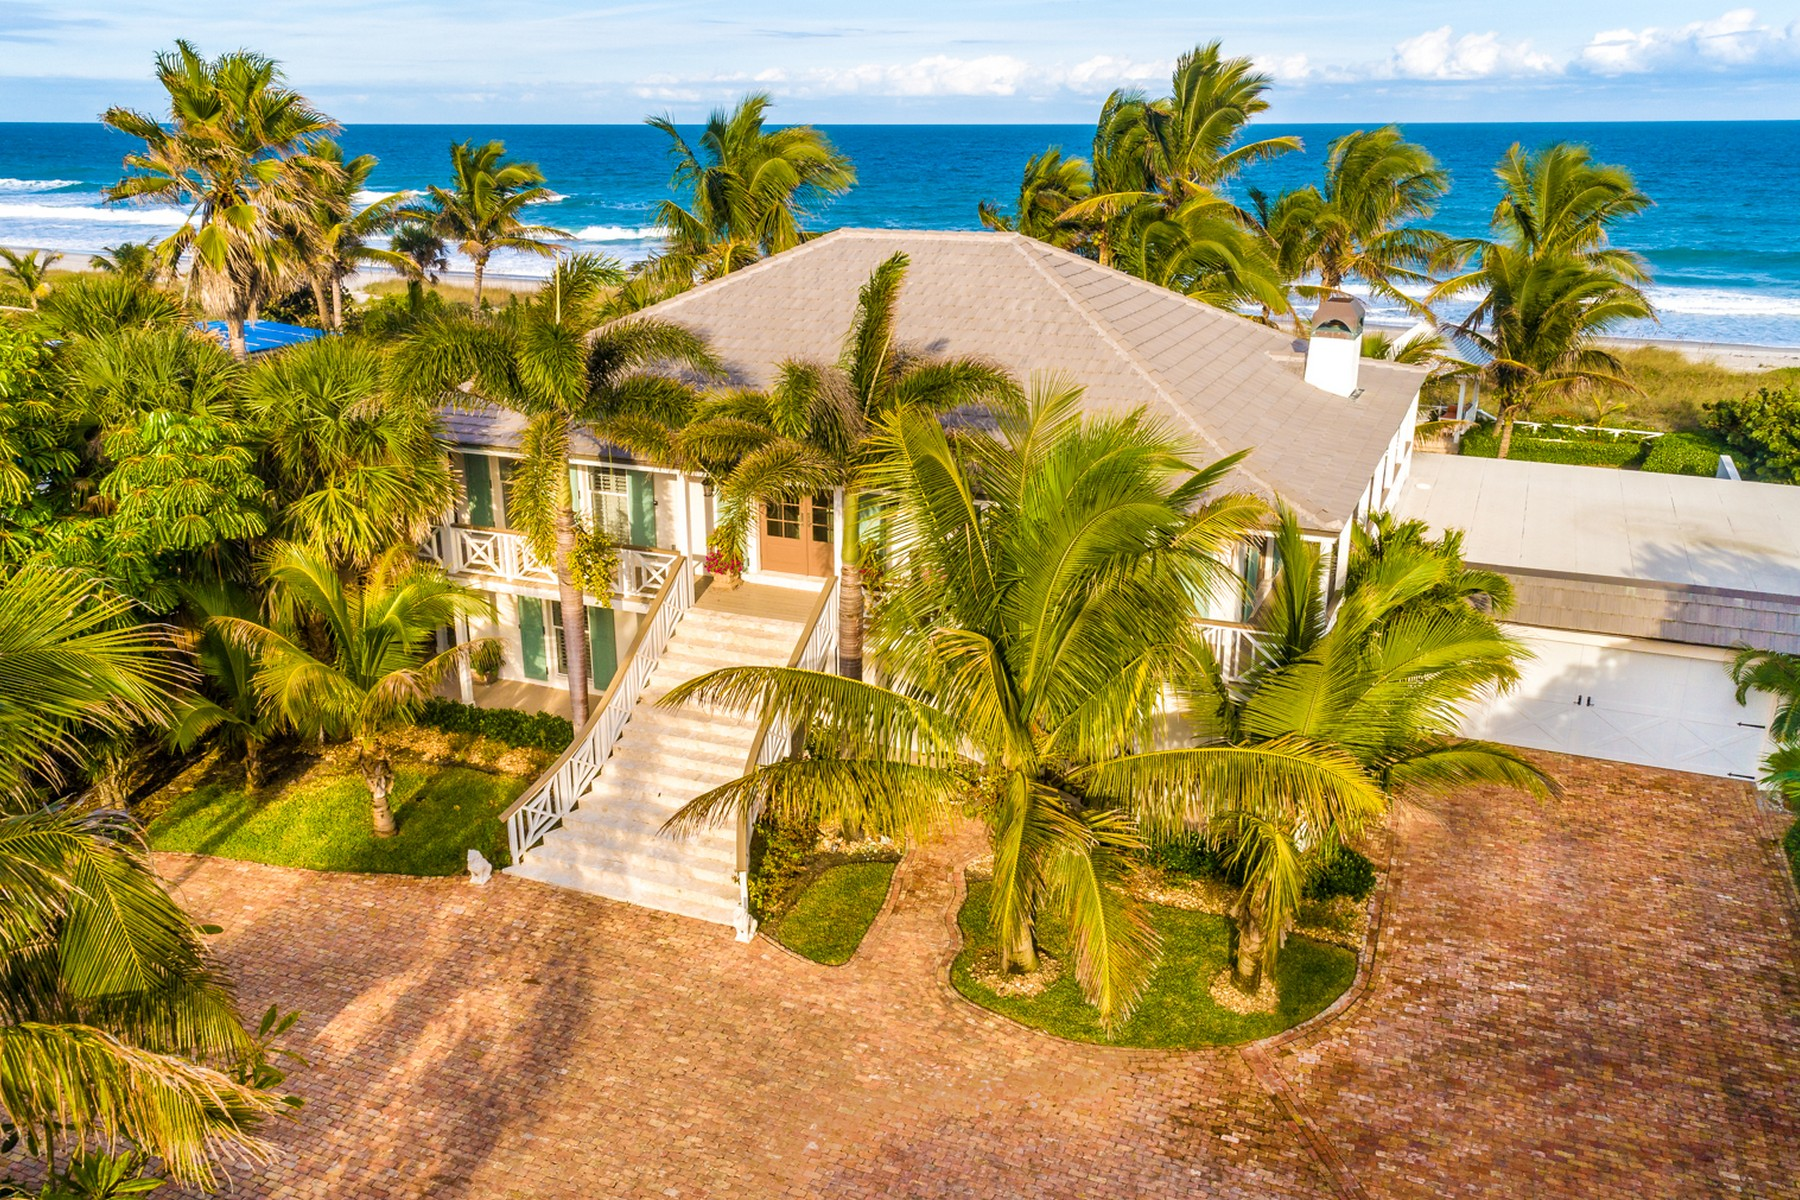 Property for Sale at Beautiful Oceanfront estate property in rarely available Indialantic by the Sea. 1517 S Miramar Avenue Indialantic, Florida 32903 United States